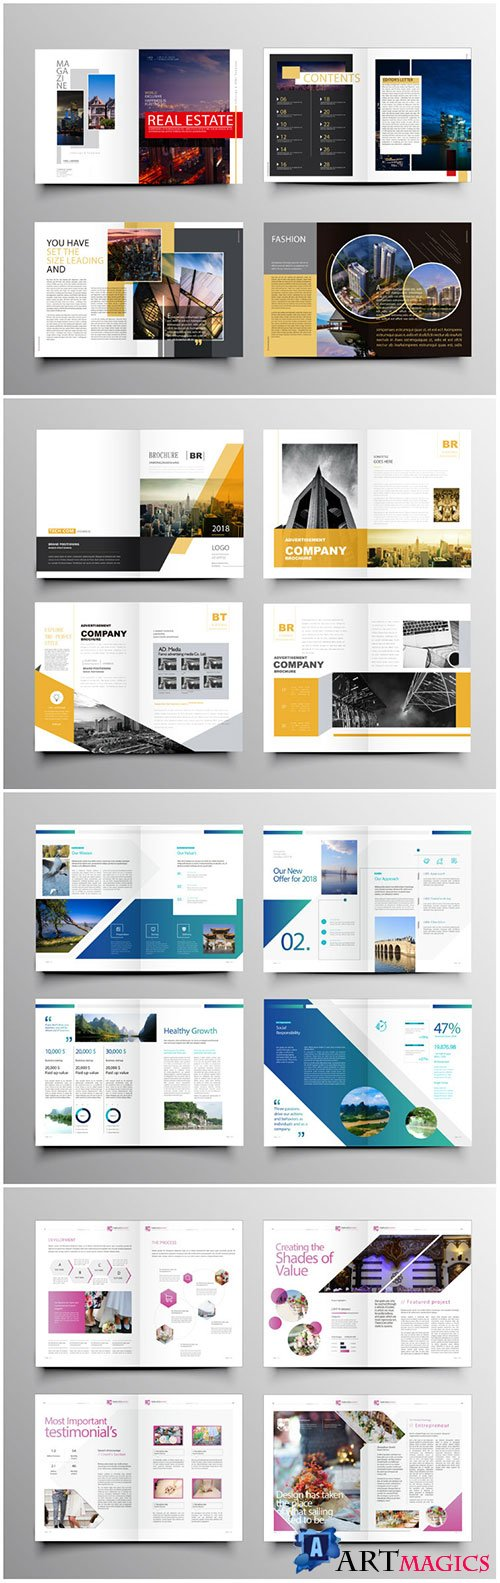 Brochure template vector layout design, corporate business annual report, magazine, flyer mockup # 229